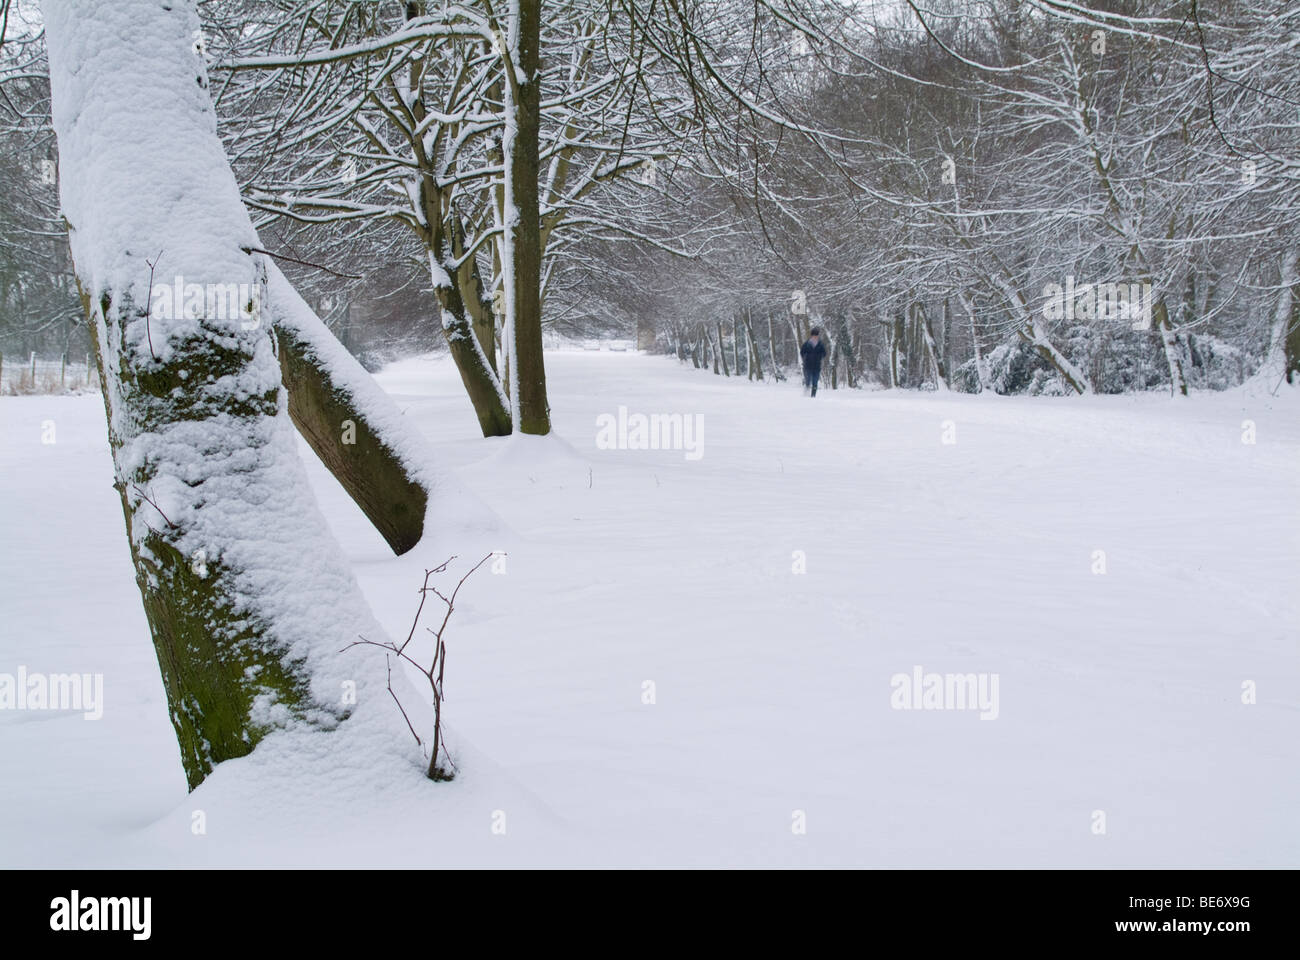 A winter walker trudging along a tree lined avenue in winter, after a heavy snow fall. - Stock Image